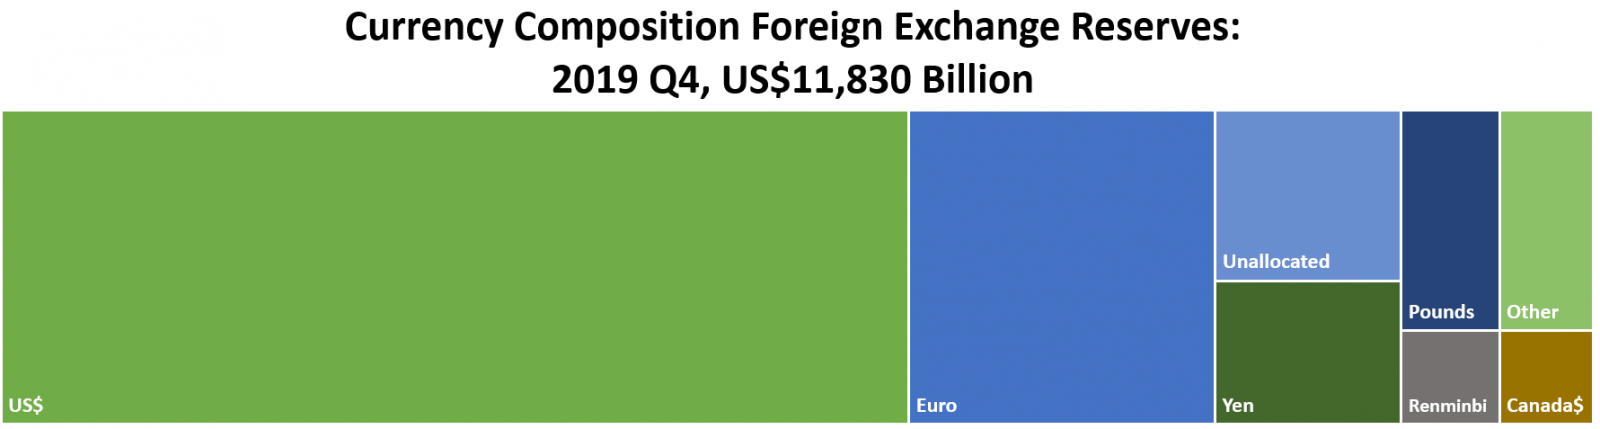 Currency Composition Foreign Exchange Reserves: 2019 Q4, Total US$11,830 Billion:   (billions) US$ $6,746  Euro	 $2,276  Renminbi $218  Yen  $631  Pounds $512  Canada$ $208  Other $488  Unallocated	$751